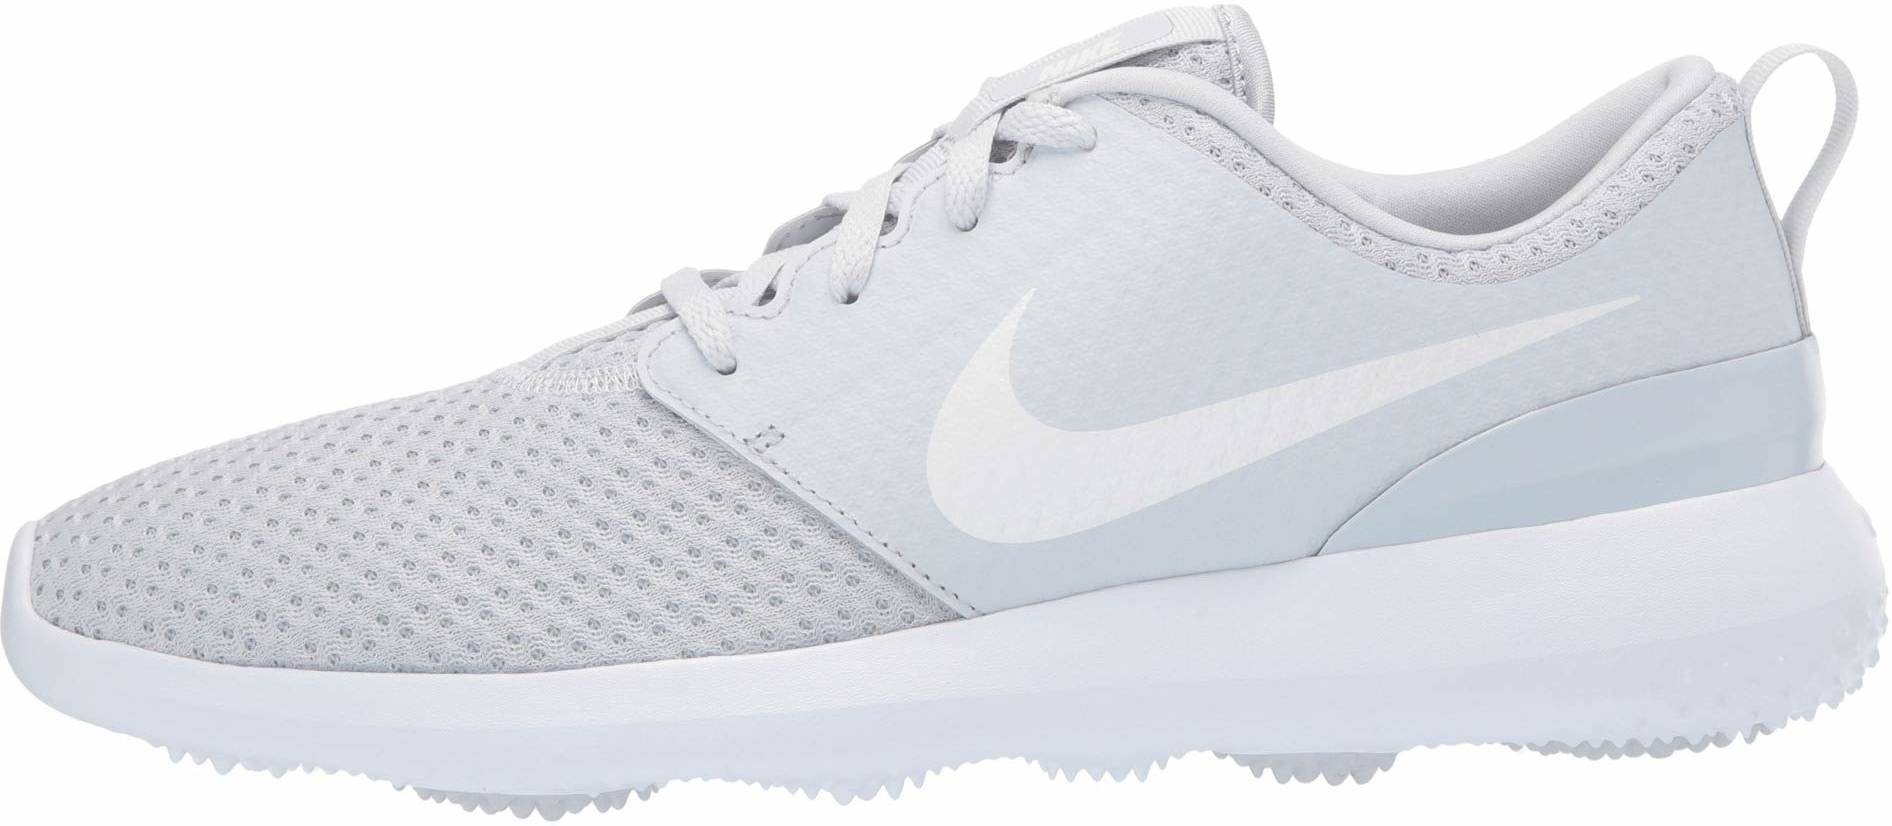 Save 21 On Laces Nike Golf Shoes 13 Models In Stock Runrepeat